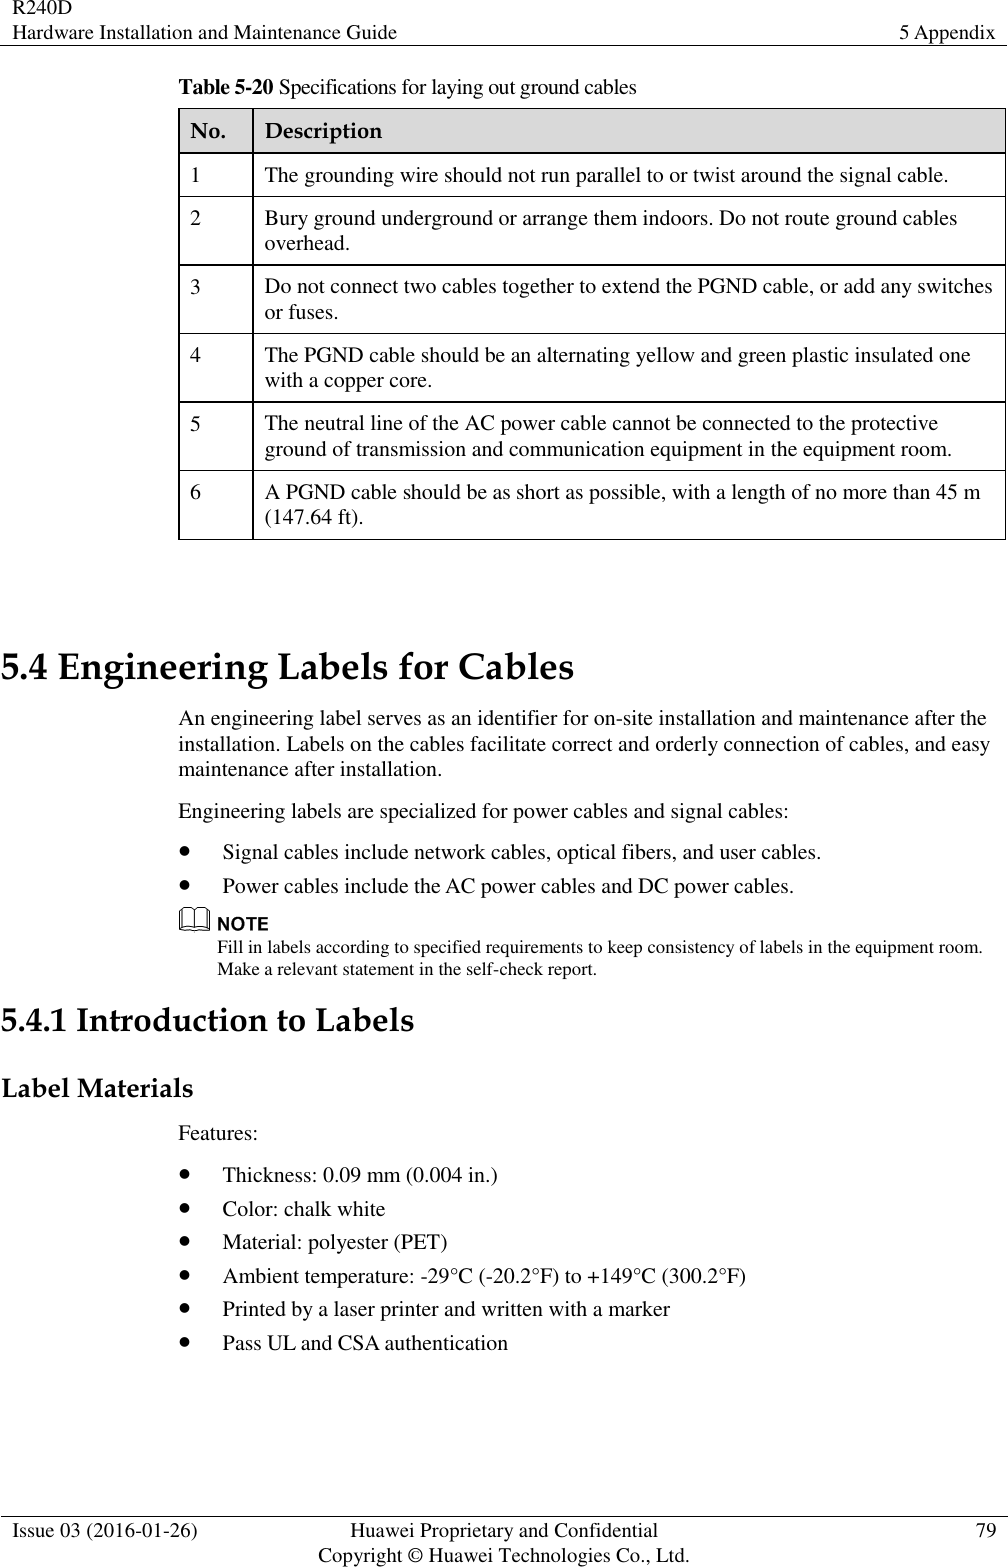 Documentation And Labeling Wire And Cable U2013 Engineering Radio Manual Guide